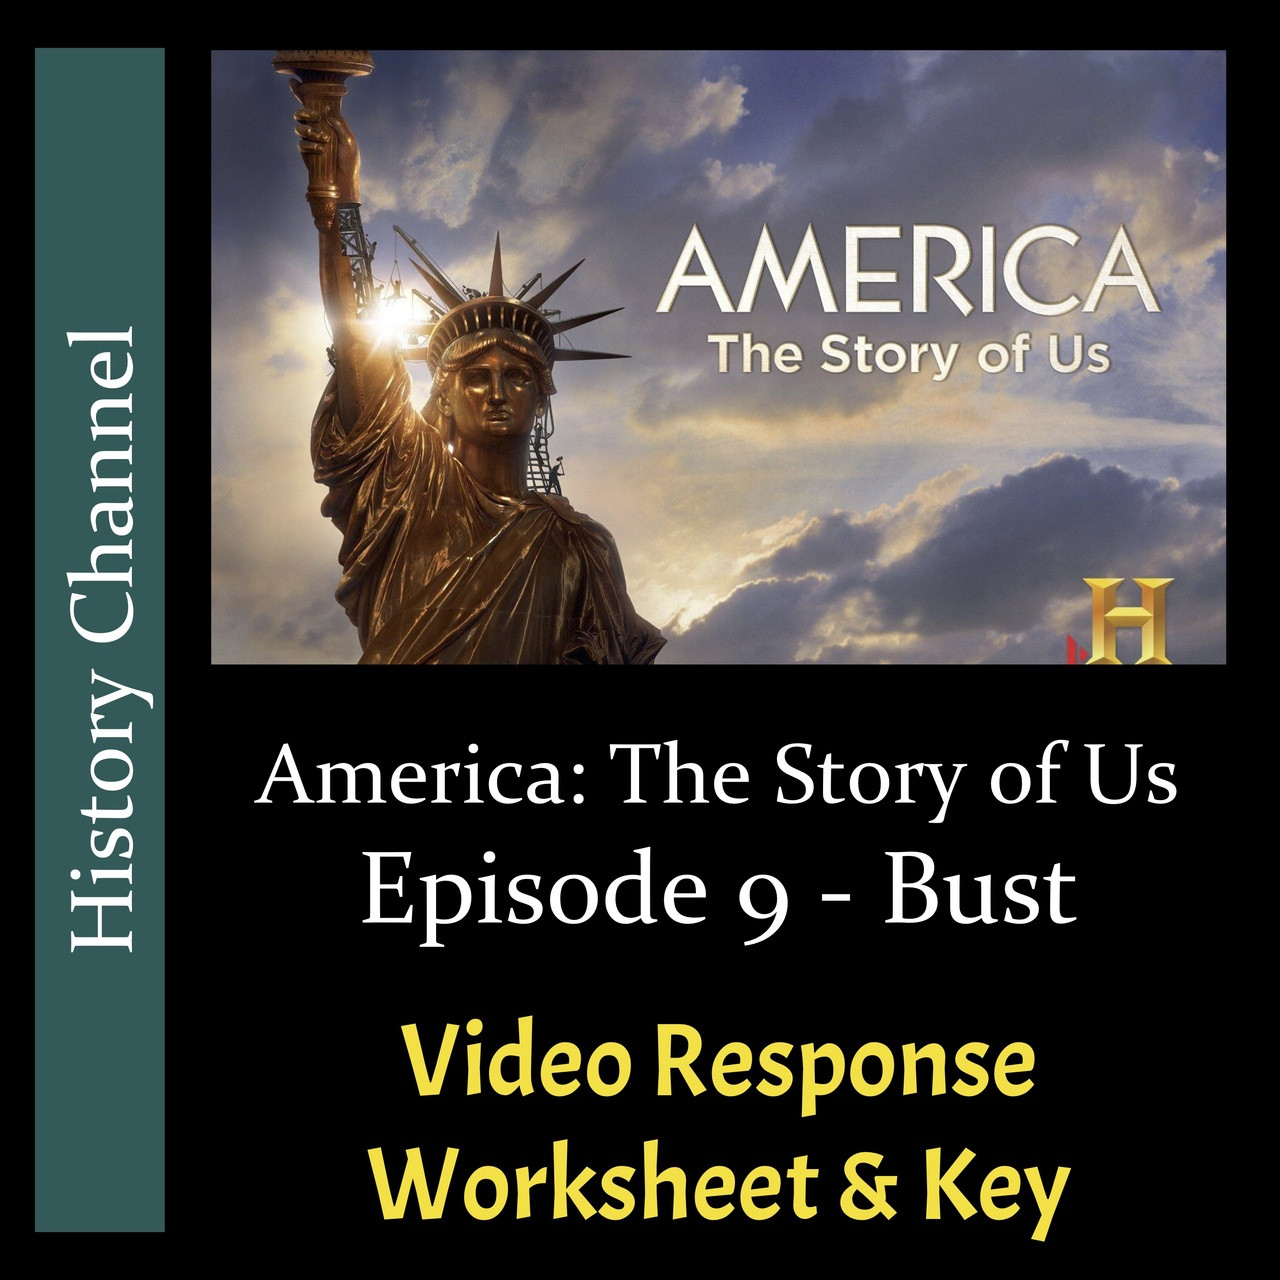 America The Story Of Us Episode 9 Bust Video Response Worksheet